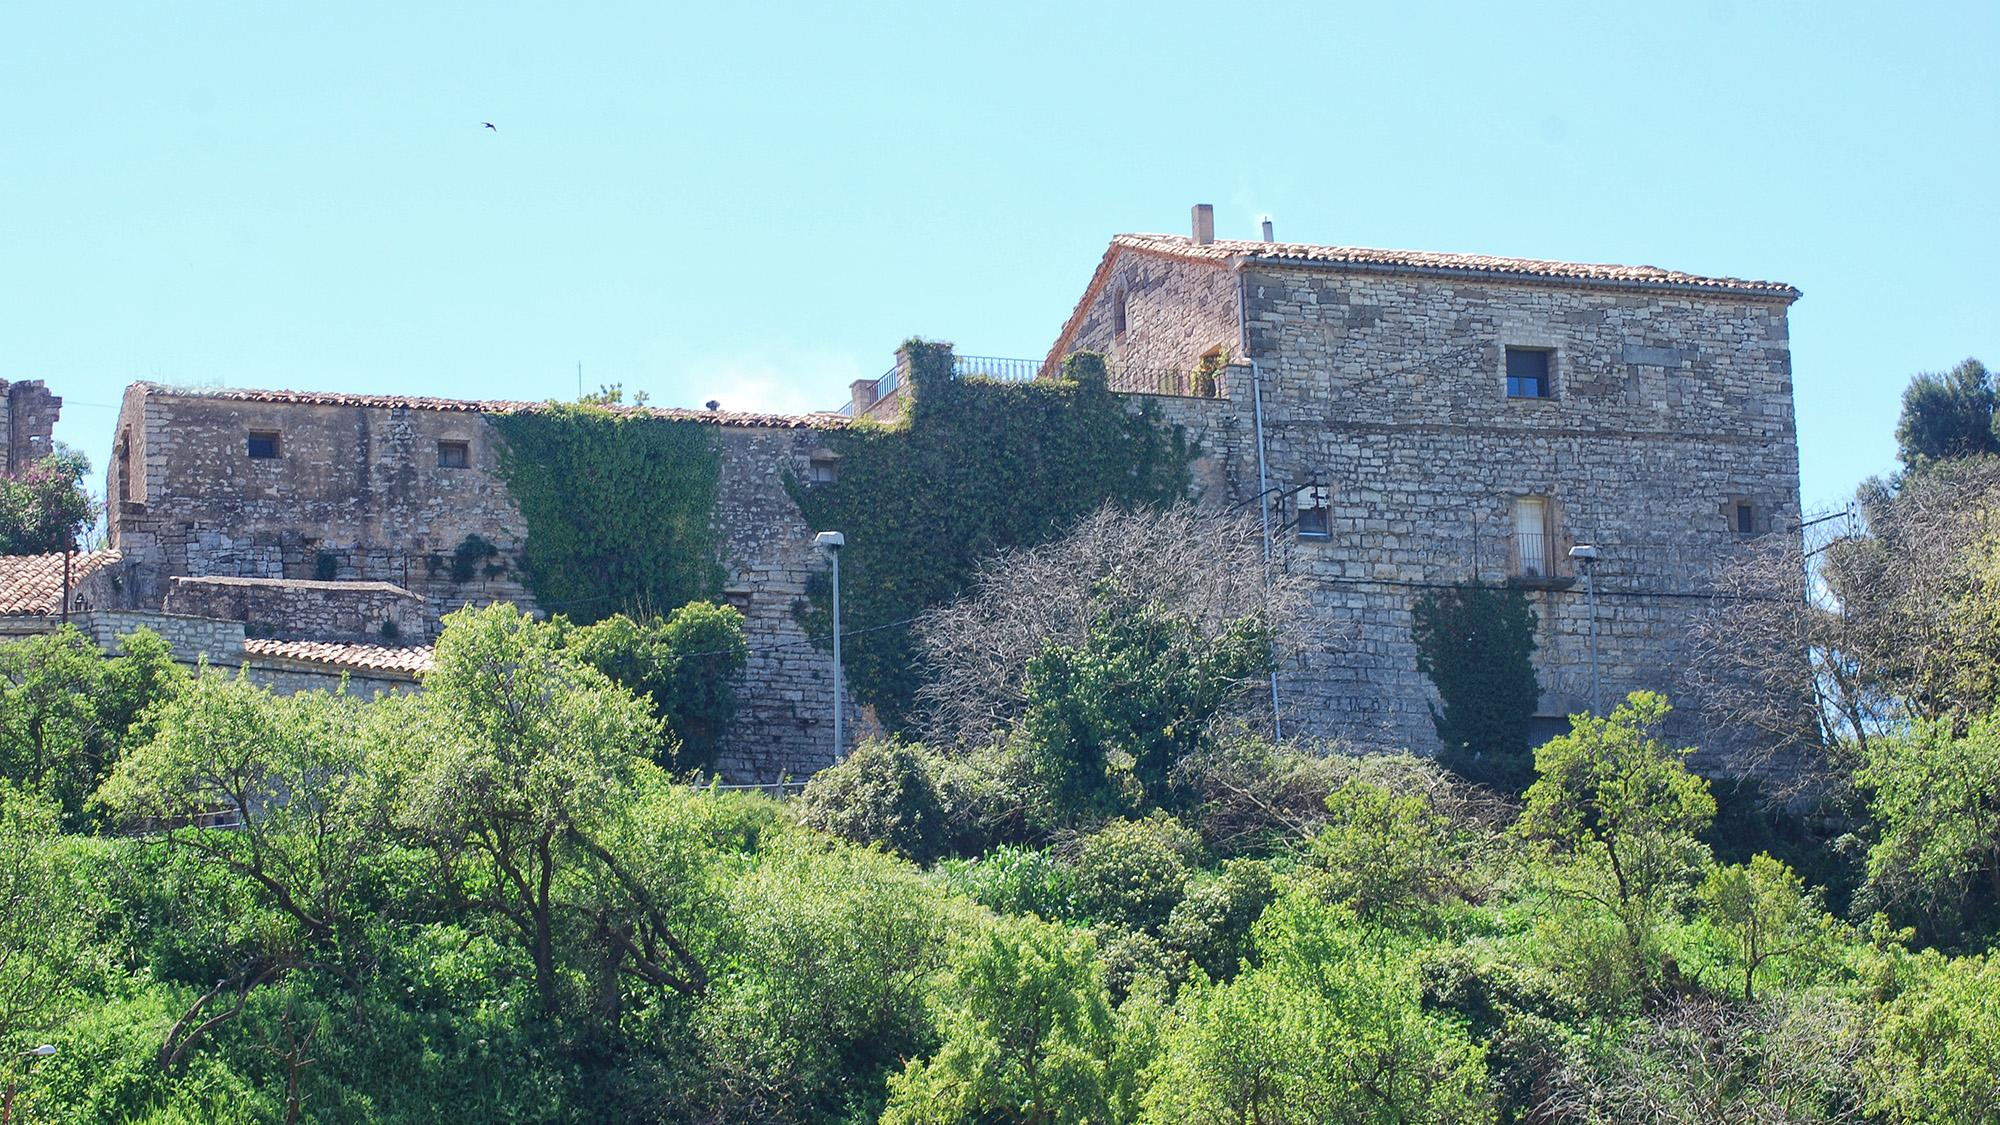 Castle of la Manresana